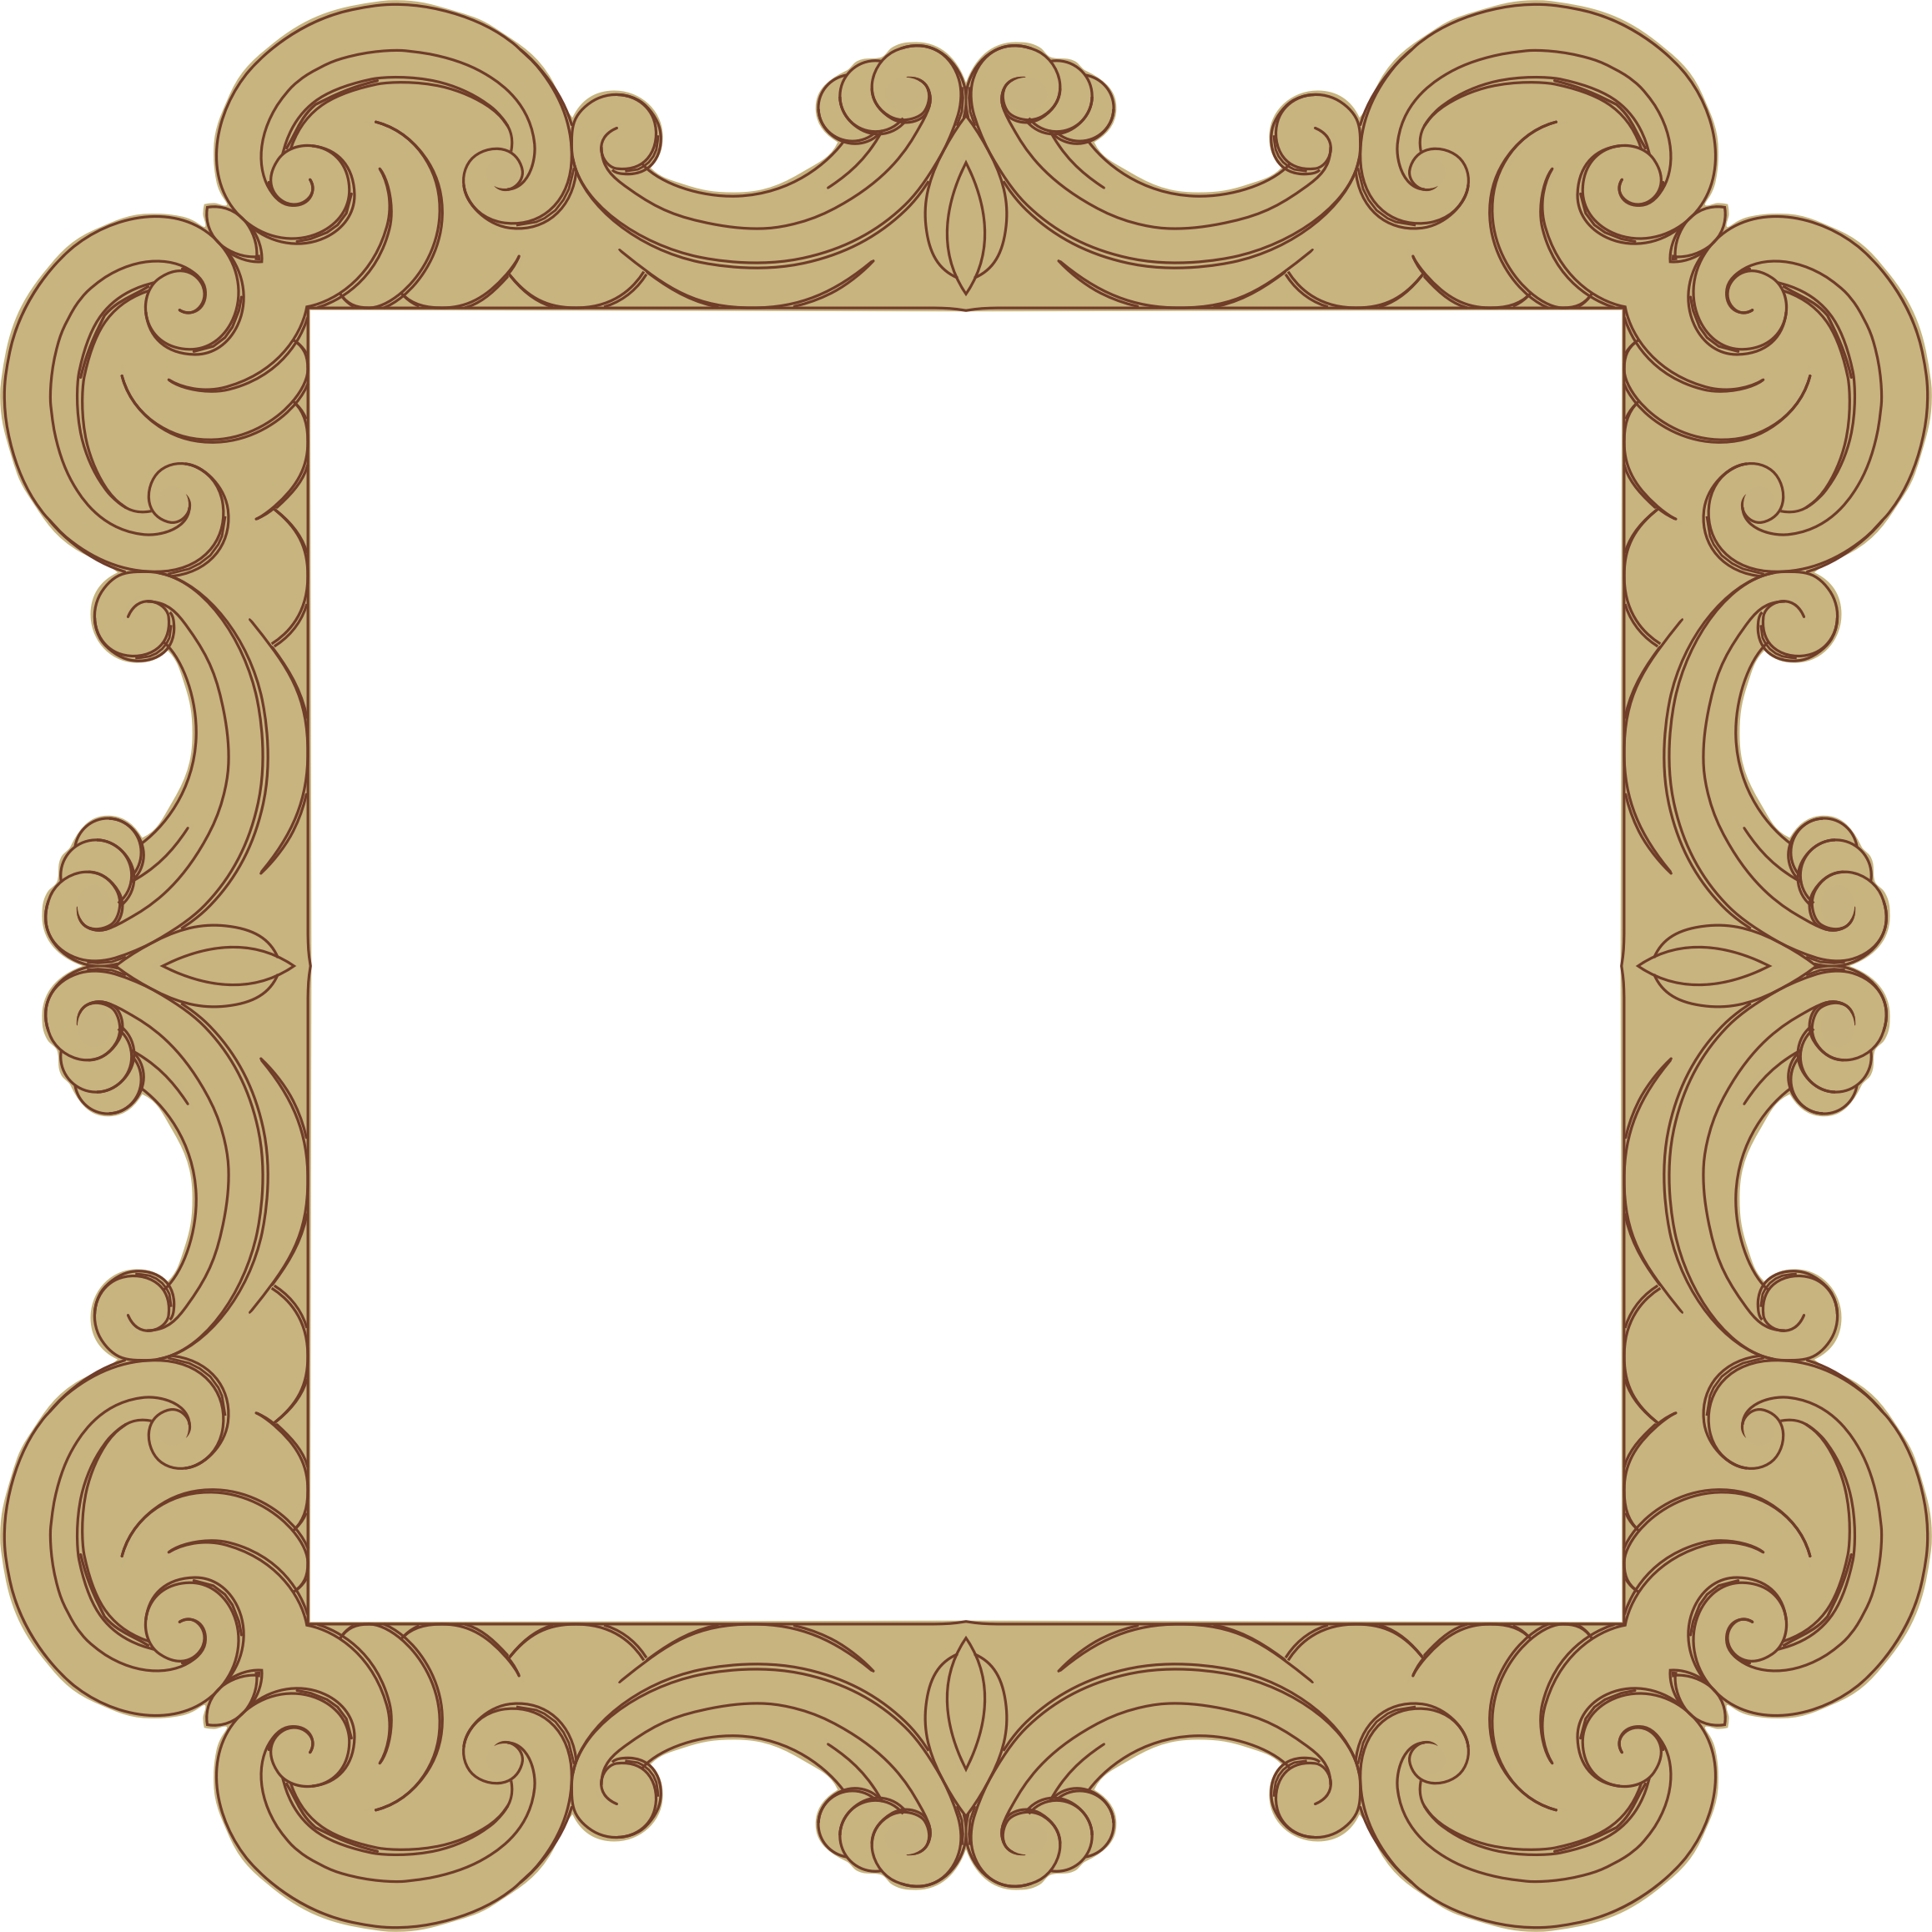 Ornate Frame 24 Derived 6 by GDJ